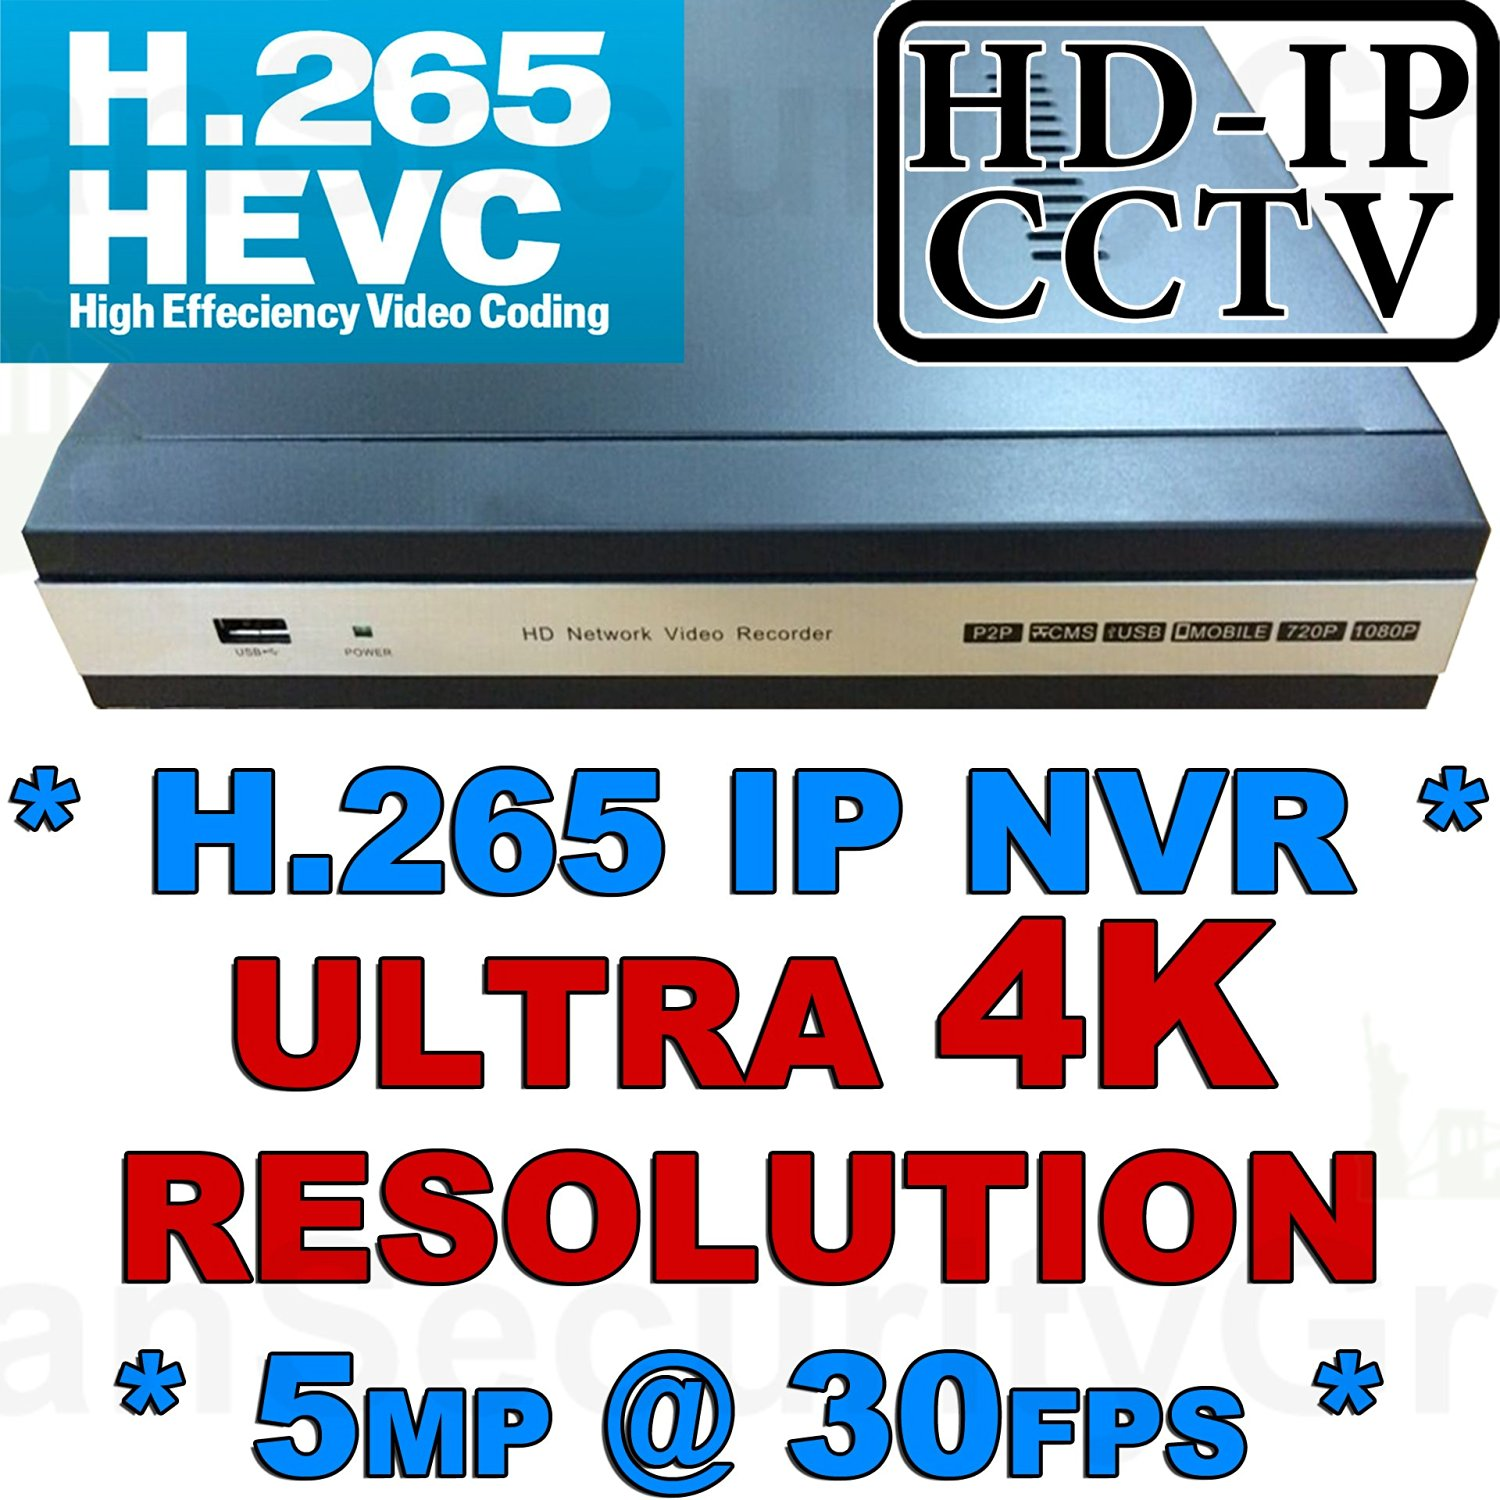 USG New Release! * 4 Channel Ultra 4k High Resolution IP Security NVR: **H.265 Compression**, Four Channels x 5MP @ 30FPS, Max 6TB HDD, ONVIF 2.4, HDMI 4K Ultra High Definition Video Output, 2x USB Ports, ONVIF 2.4 *** Easy Plug & Play *** View Cameras Remotely On Phones + Computers